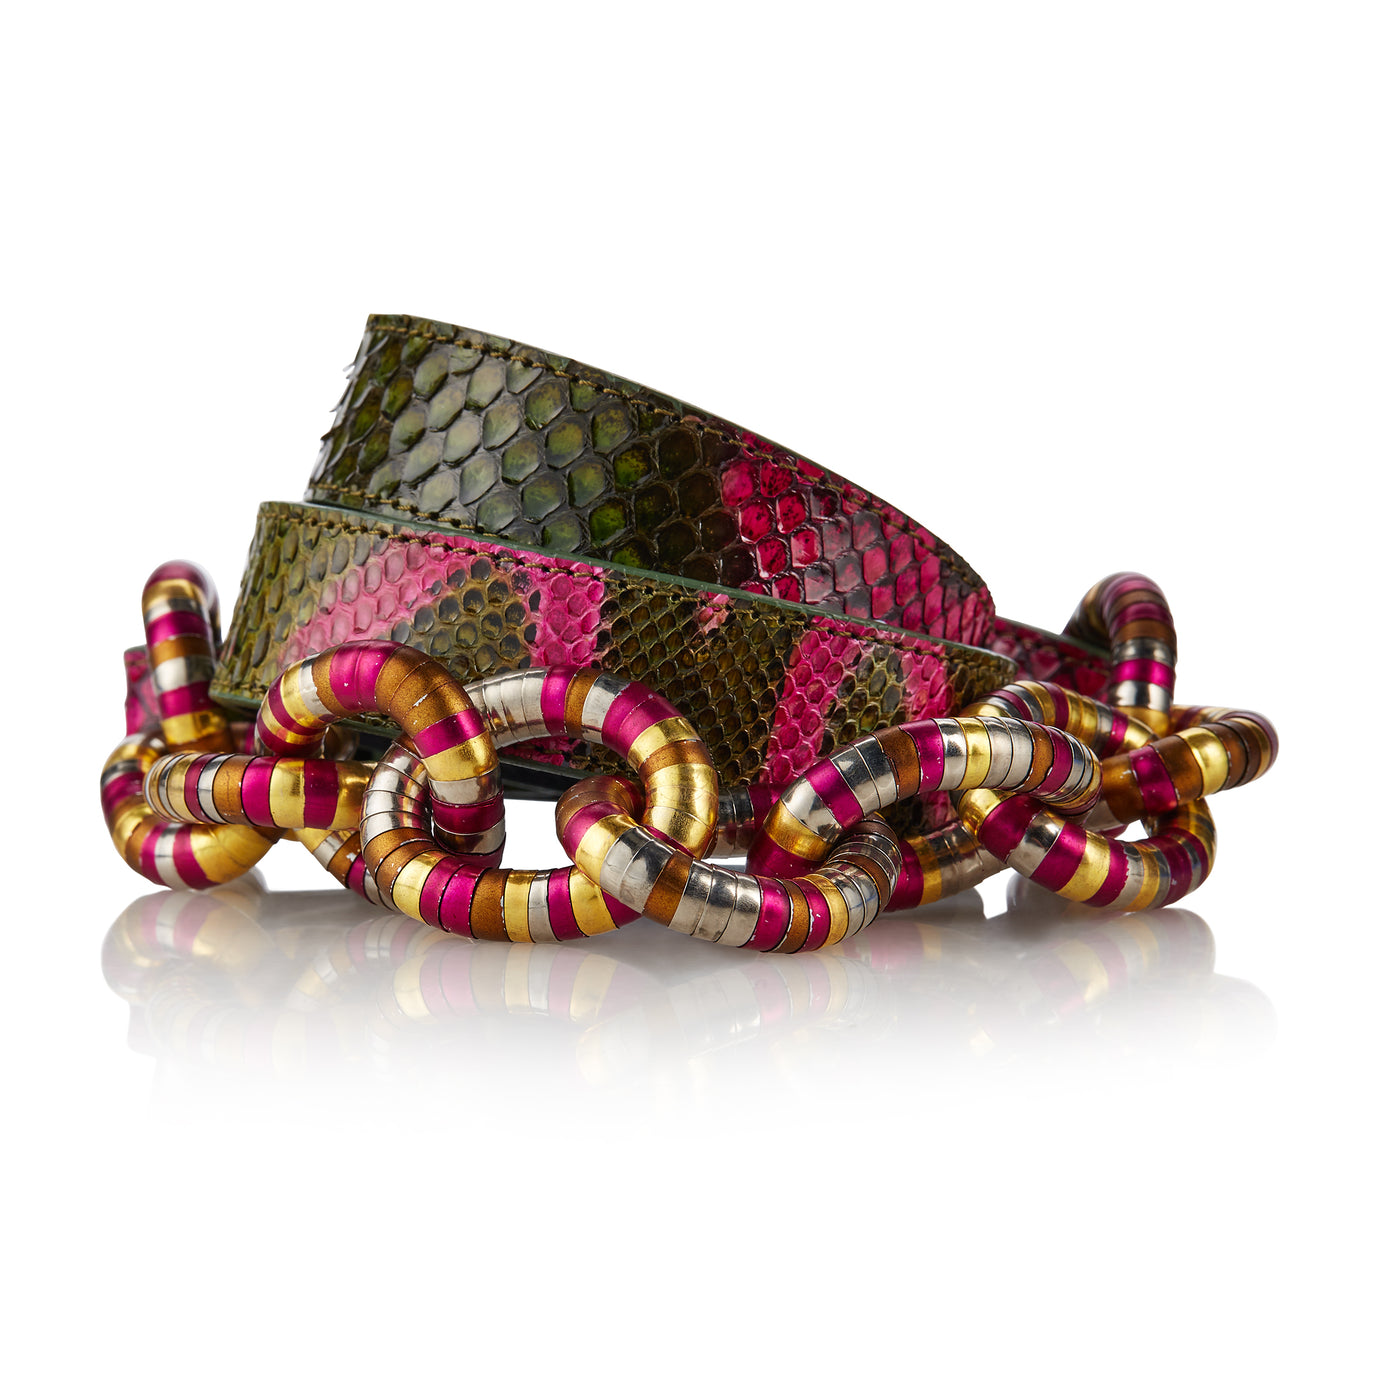 Piraha - Handcrafted Snake Leather Belt / Green Pink